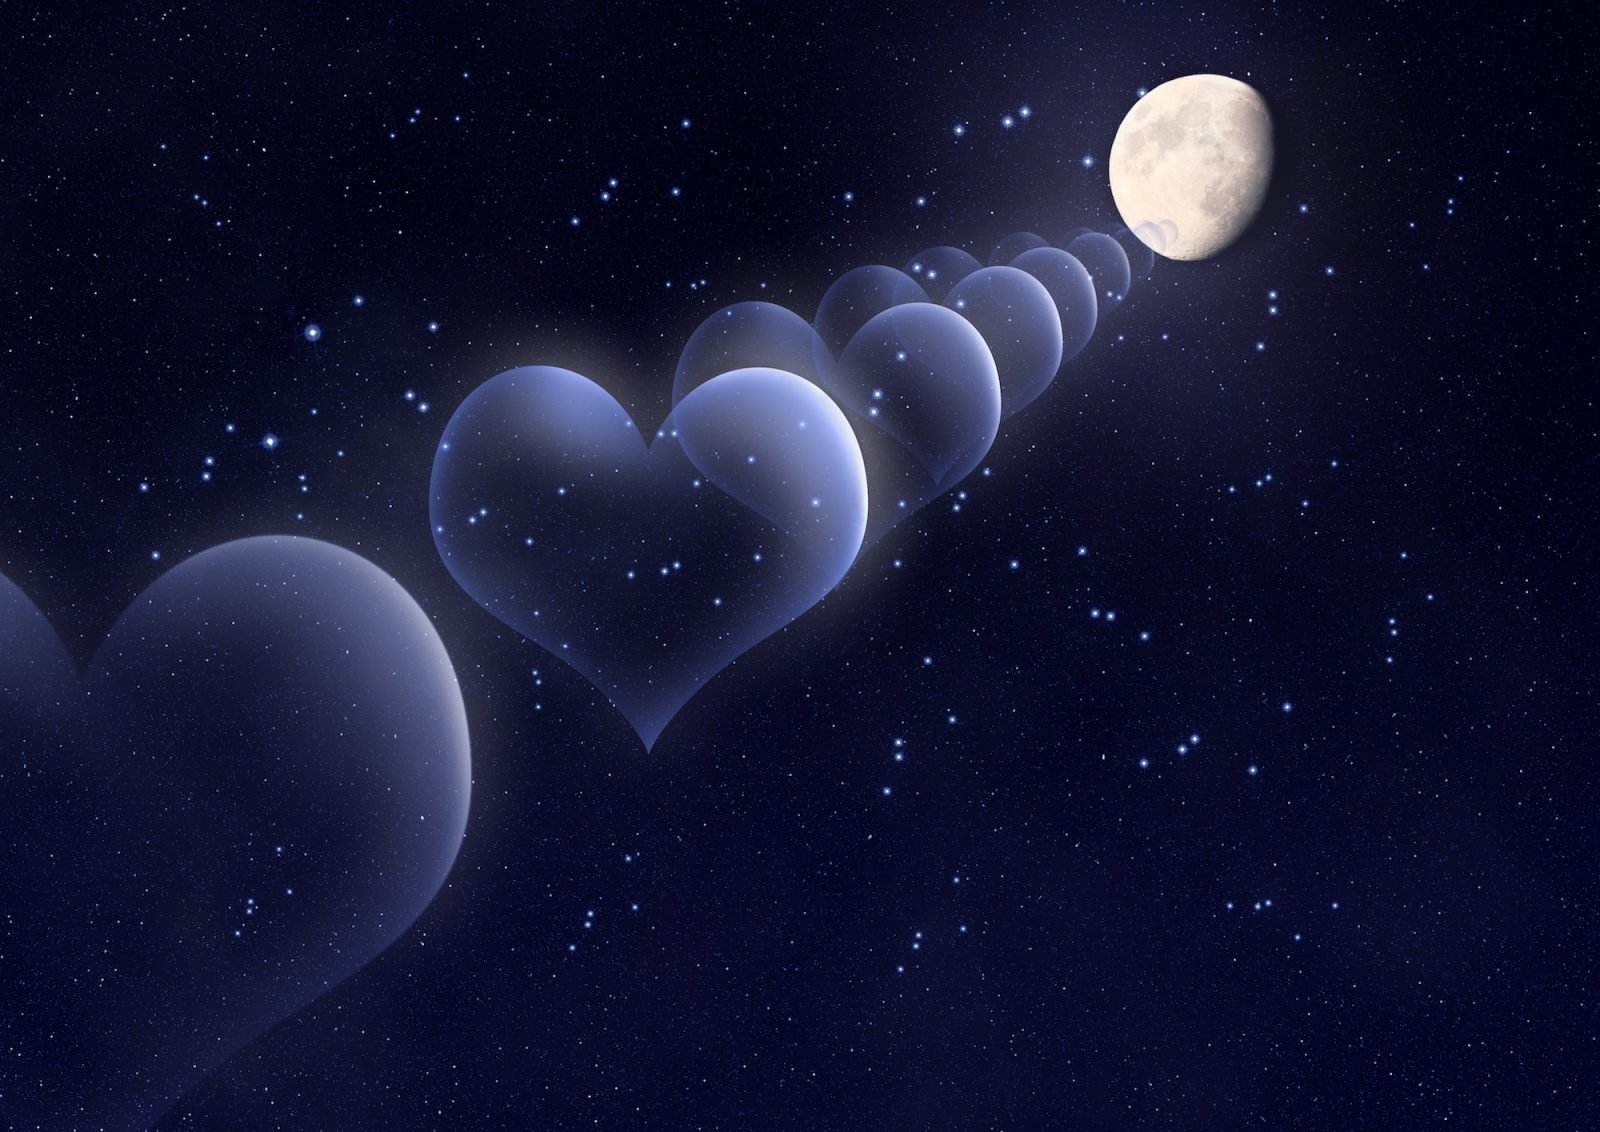 Bubbles in the shape of a heart against the moon in space